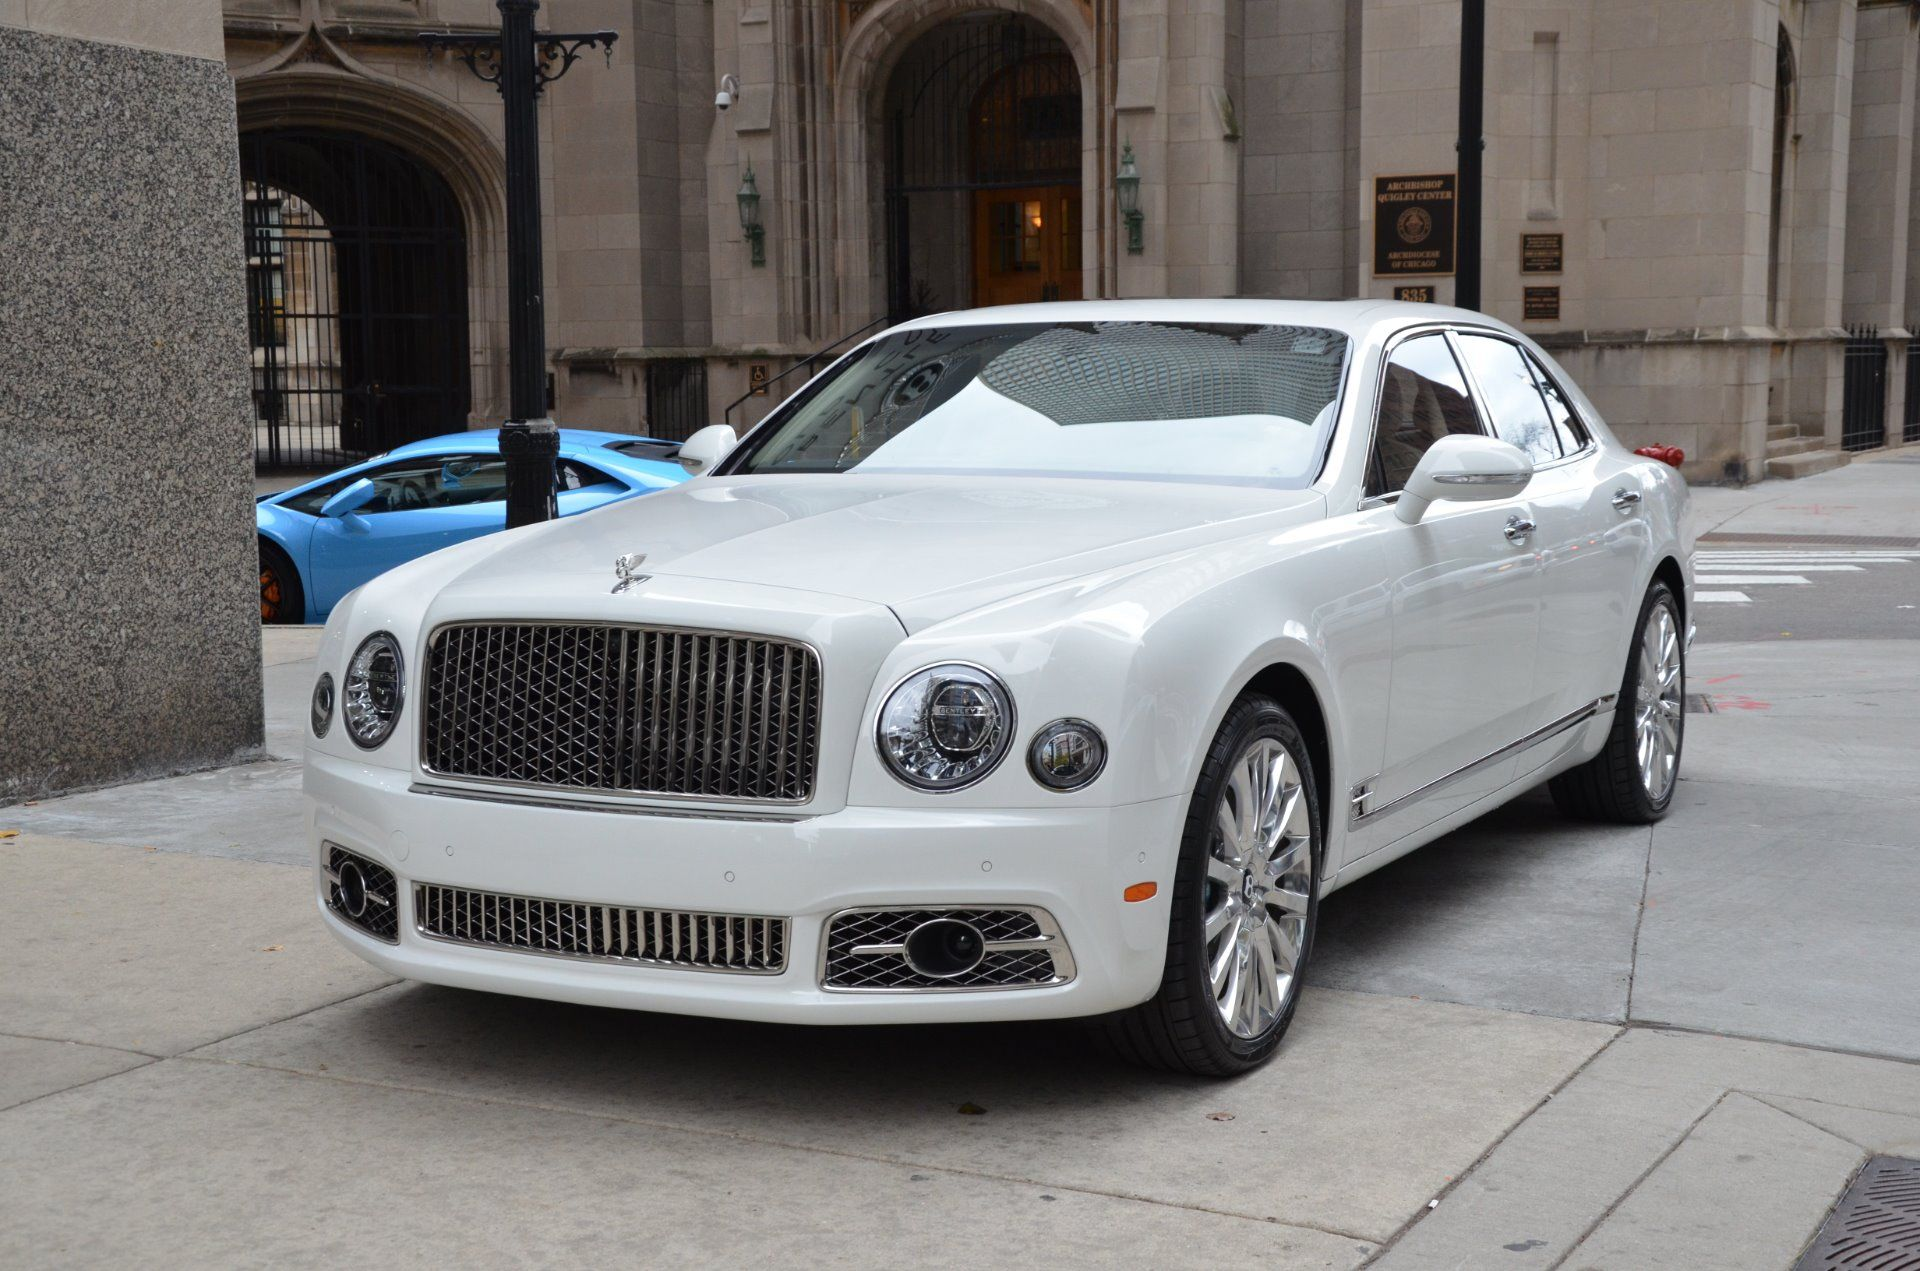 2017 Bentley Mulsanne I Love Bentleys Because They Are More Of A Clic And Comfy Car In Lot The Newer Cars You Dont Get That